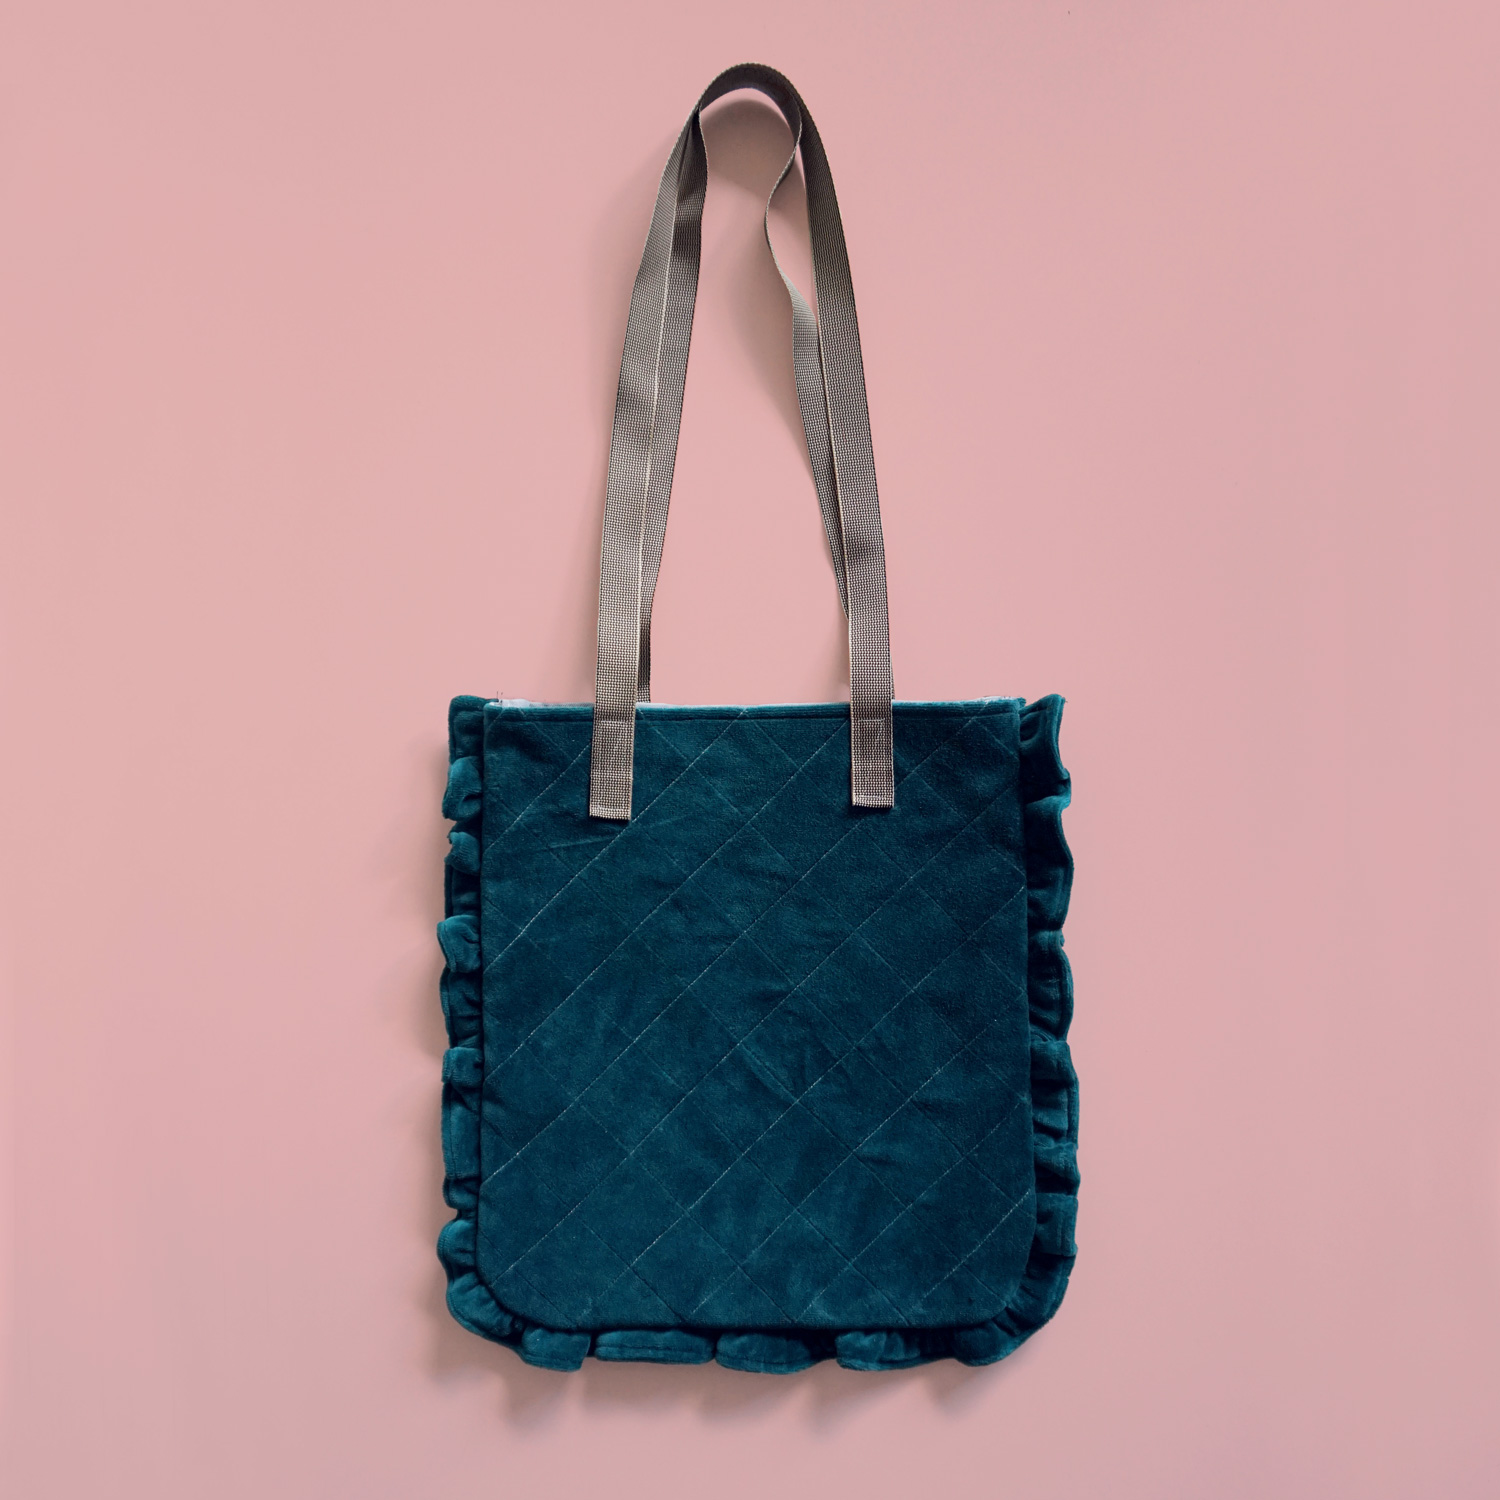 A luxurious and playful tote bag with a ruffled border and quilted outer. A fun statement bag that holds all your day-to-day essentials.